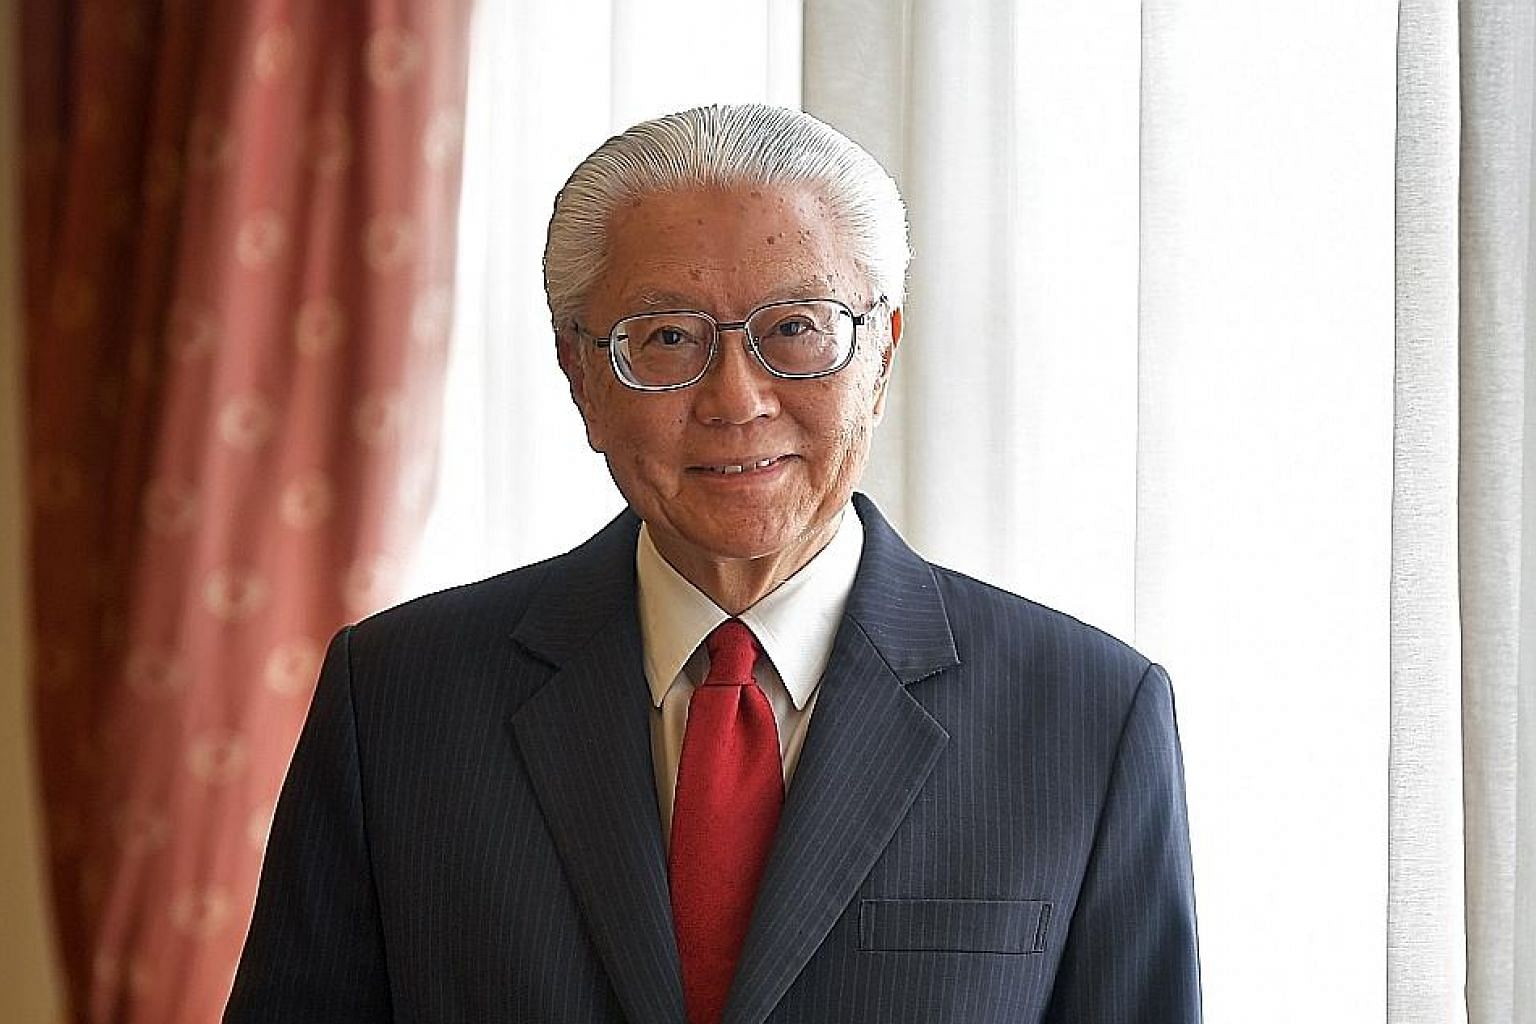 Former president Tony Tan Keng Yam will assume his new roles at GIC with effect from Jan 1 next year.